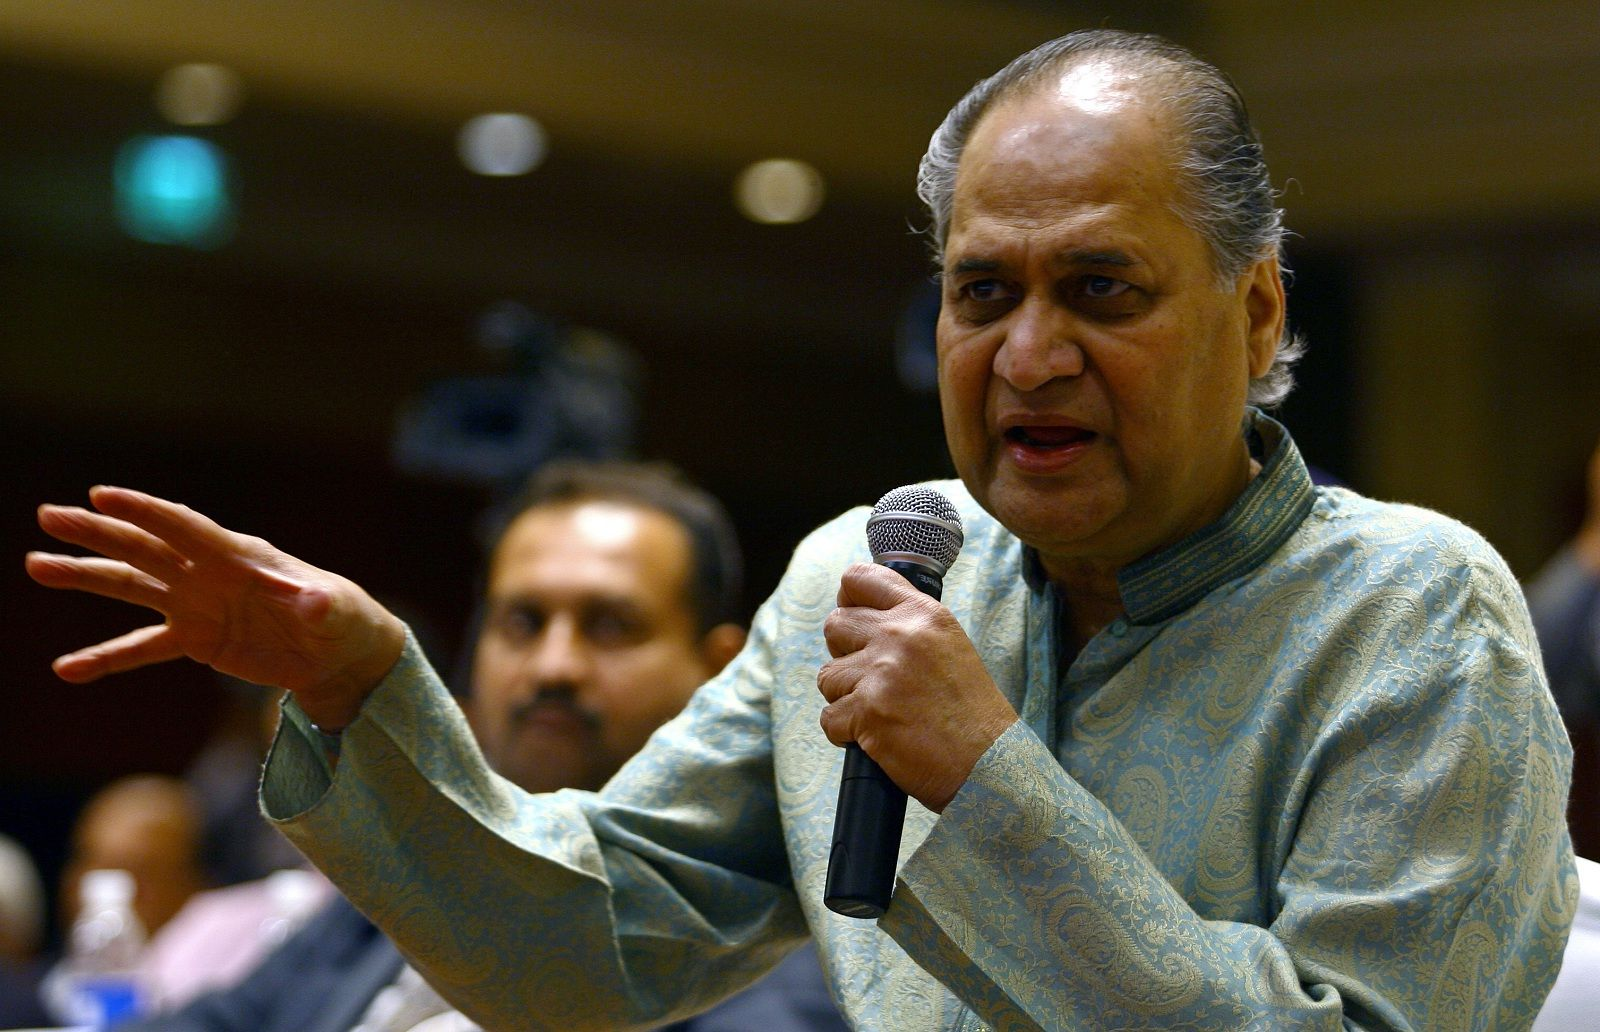 Bajaj Finserv: The company on Wednesday said its chairman and non-executive director Rahul Bajaj has resigned and will serve as the Chairman Emeritus from May. (Image: Reuters)